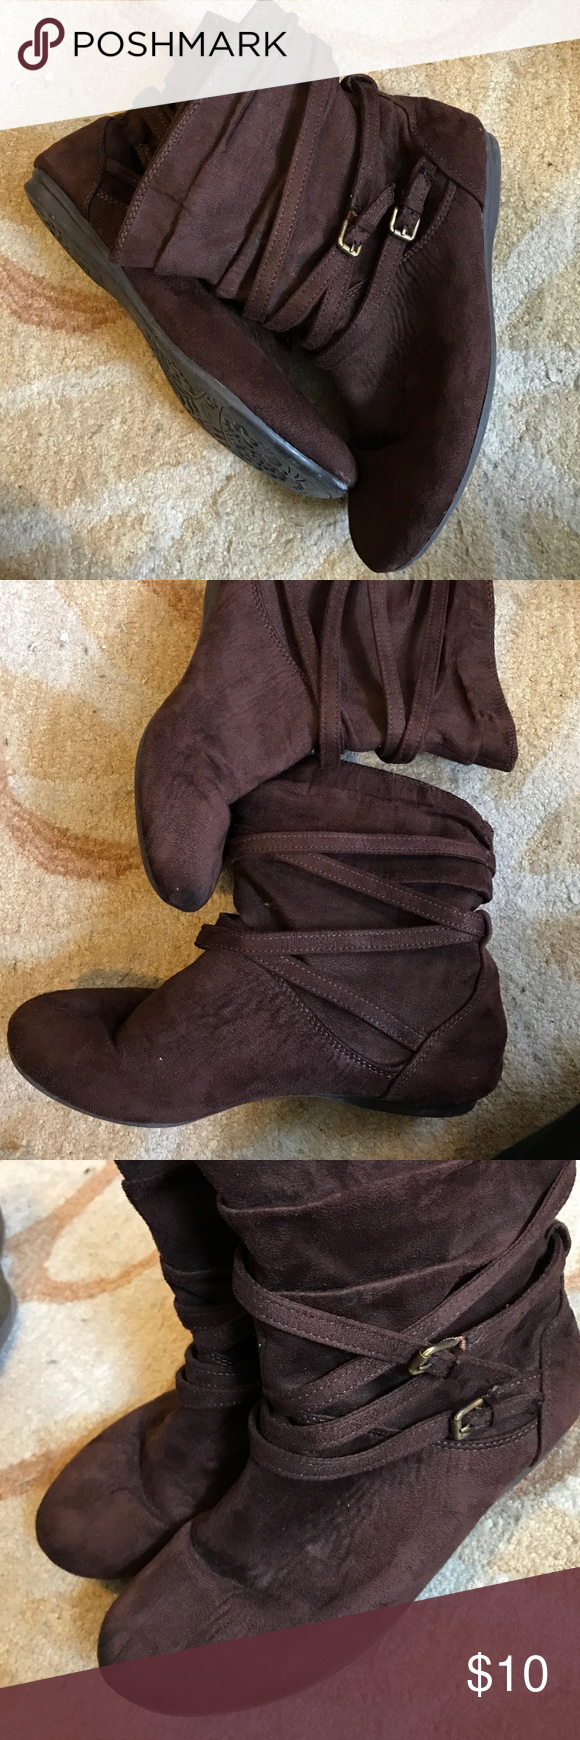 Adorable Brown Seude Booties Lightly worn but in great condition! No major signs of wear. Very comfortable soles- these look great on a variety of outfits! True to size. I don't think the outside is true seude but it looks like it and it has proved to be very durable! Ask me any questions! Willing to drop price with bundle. So Shoes Ankle Boots & Booties